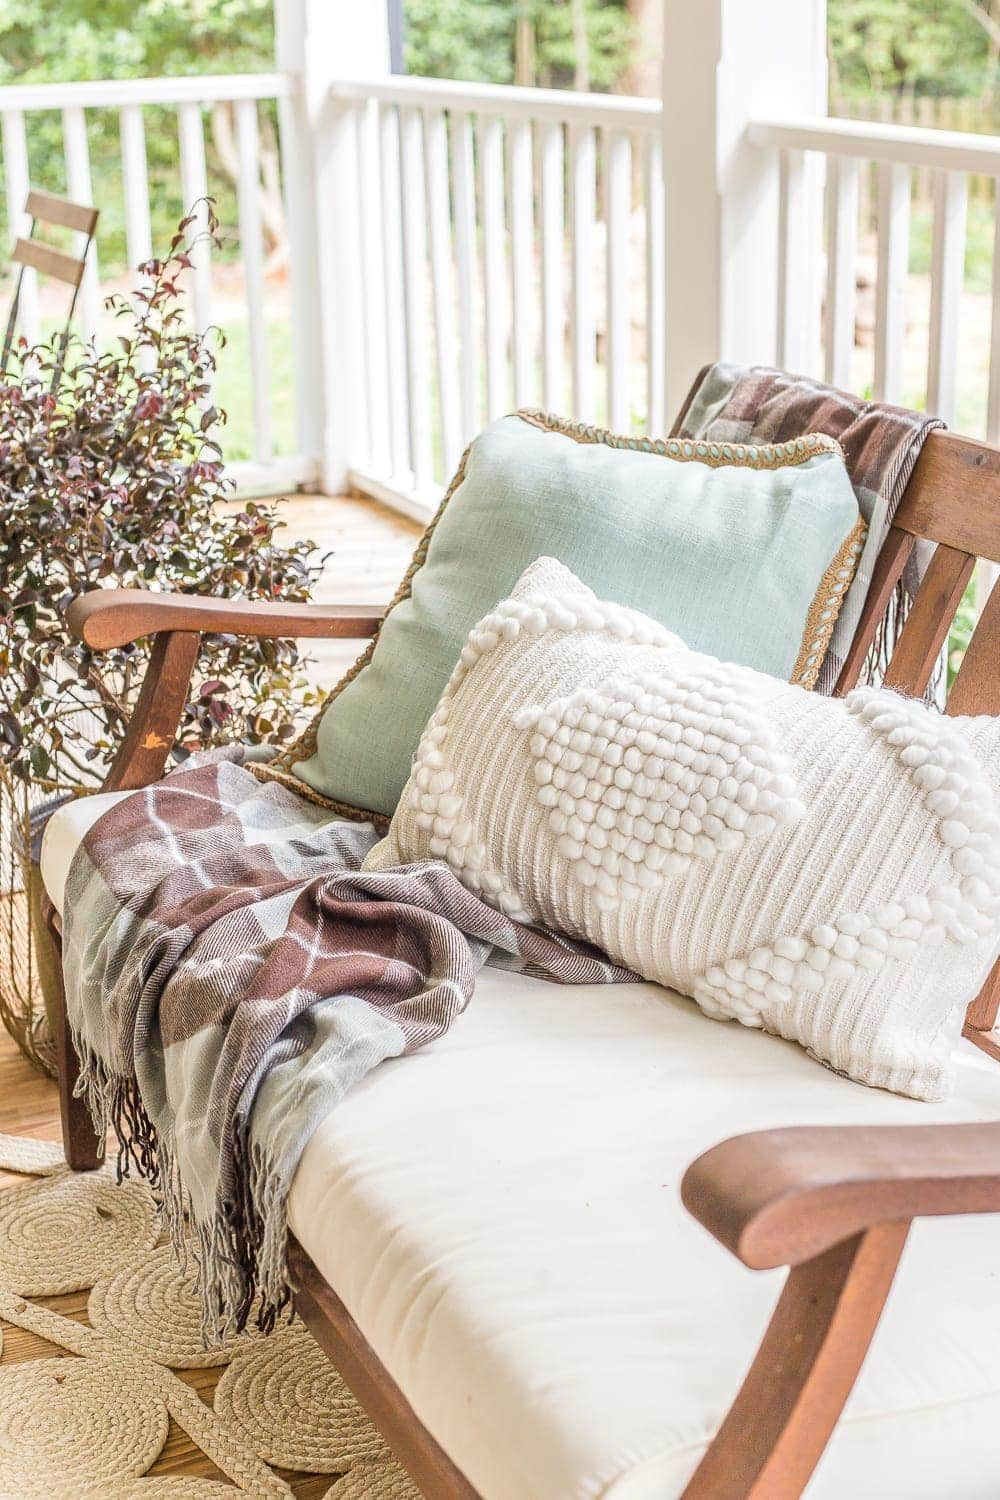 Fall Back Porch | How to style your outdoor spaces for autumn using capsule decor items that will last throughout the seasons and get the most bang for your buck.